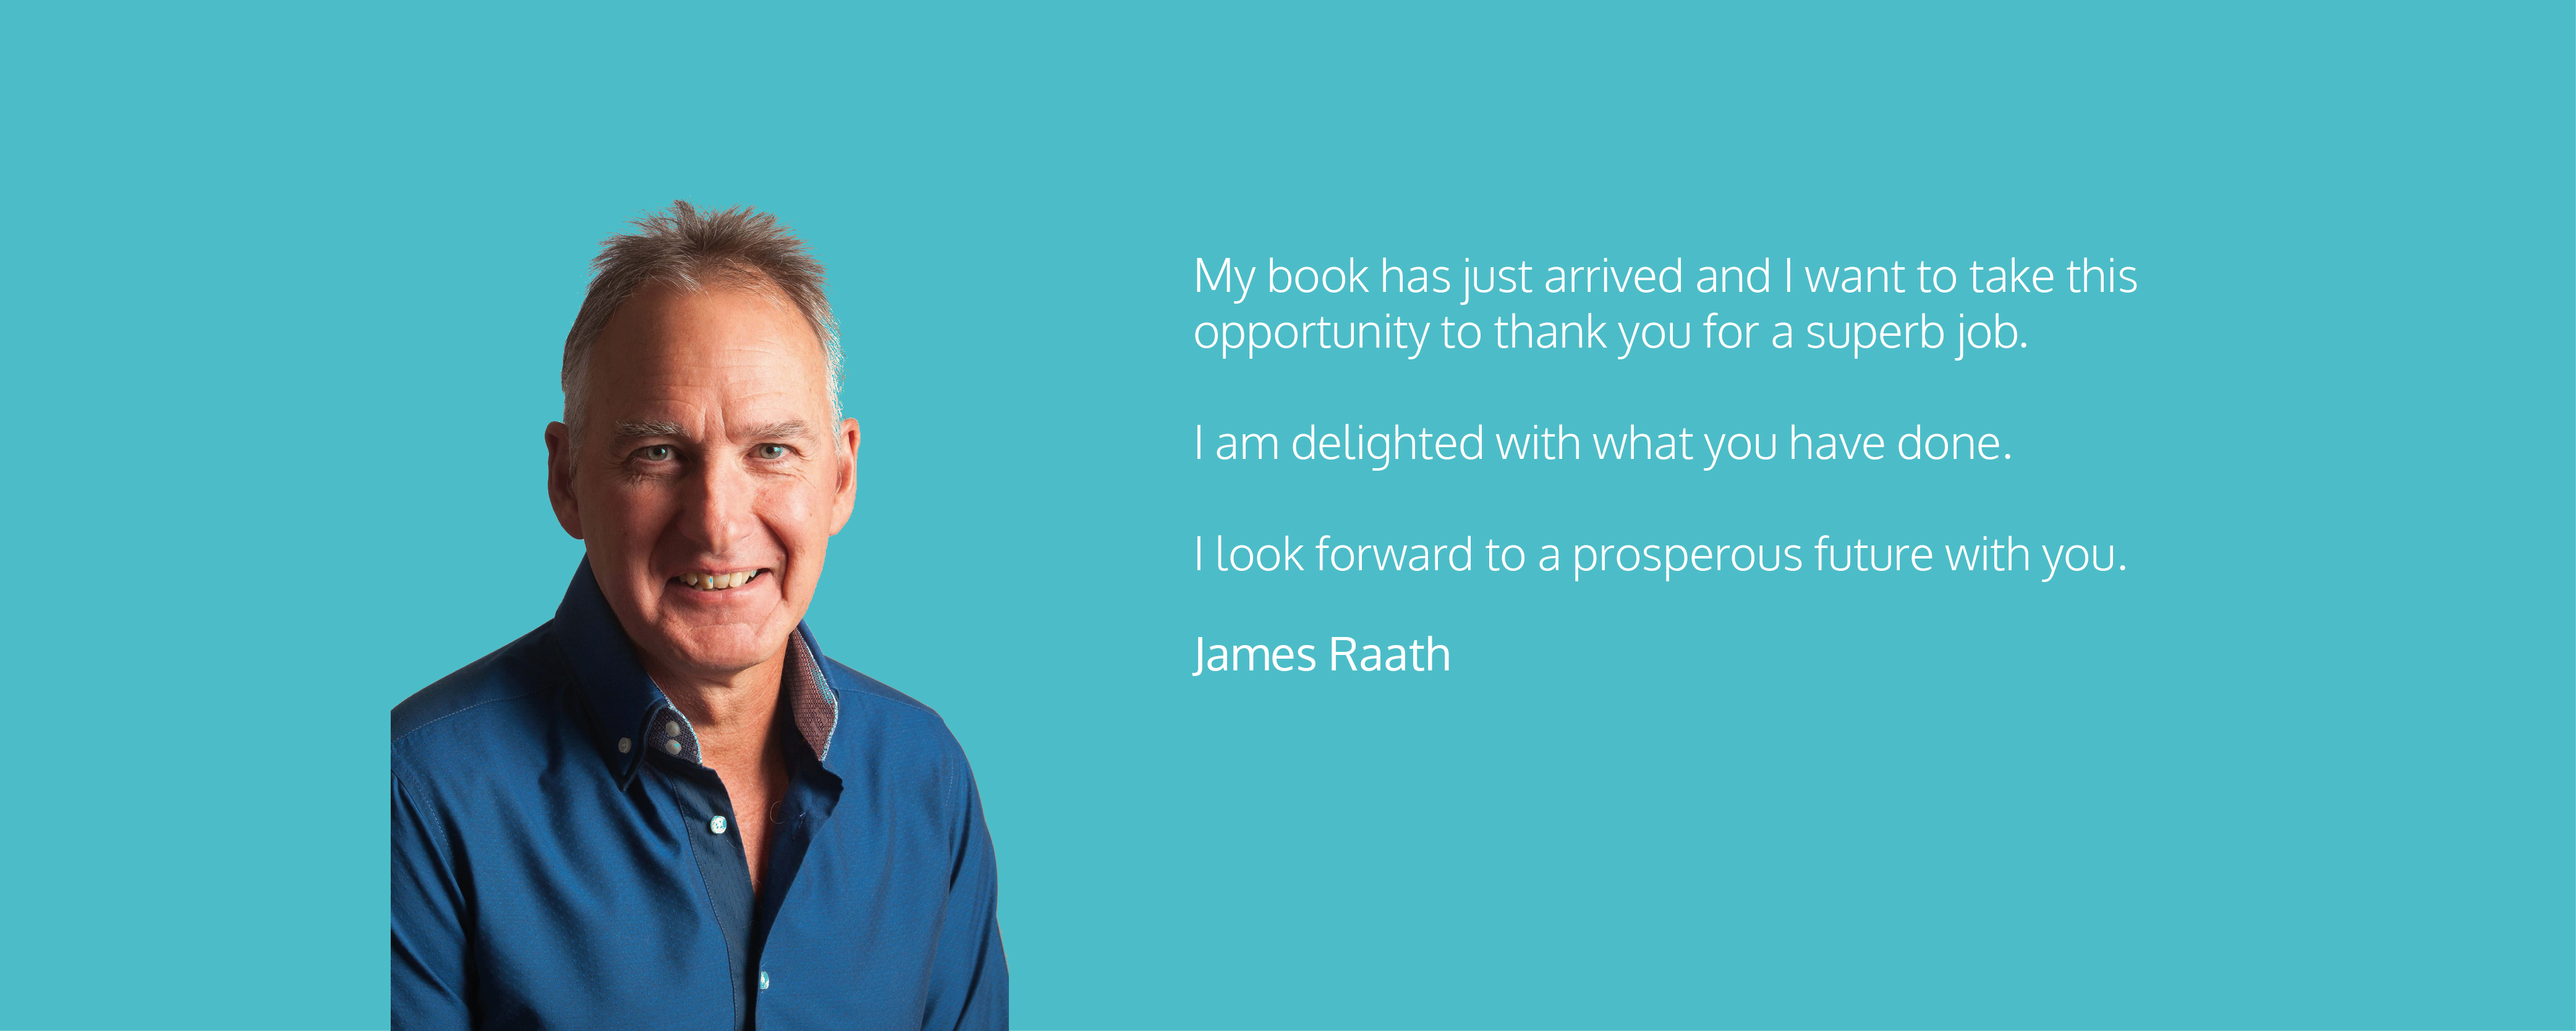 James Raath2 1000x400